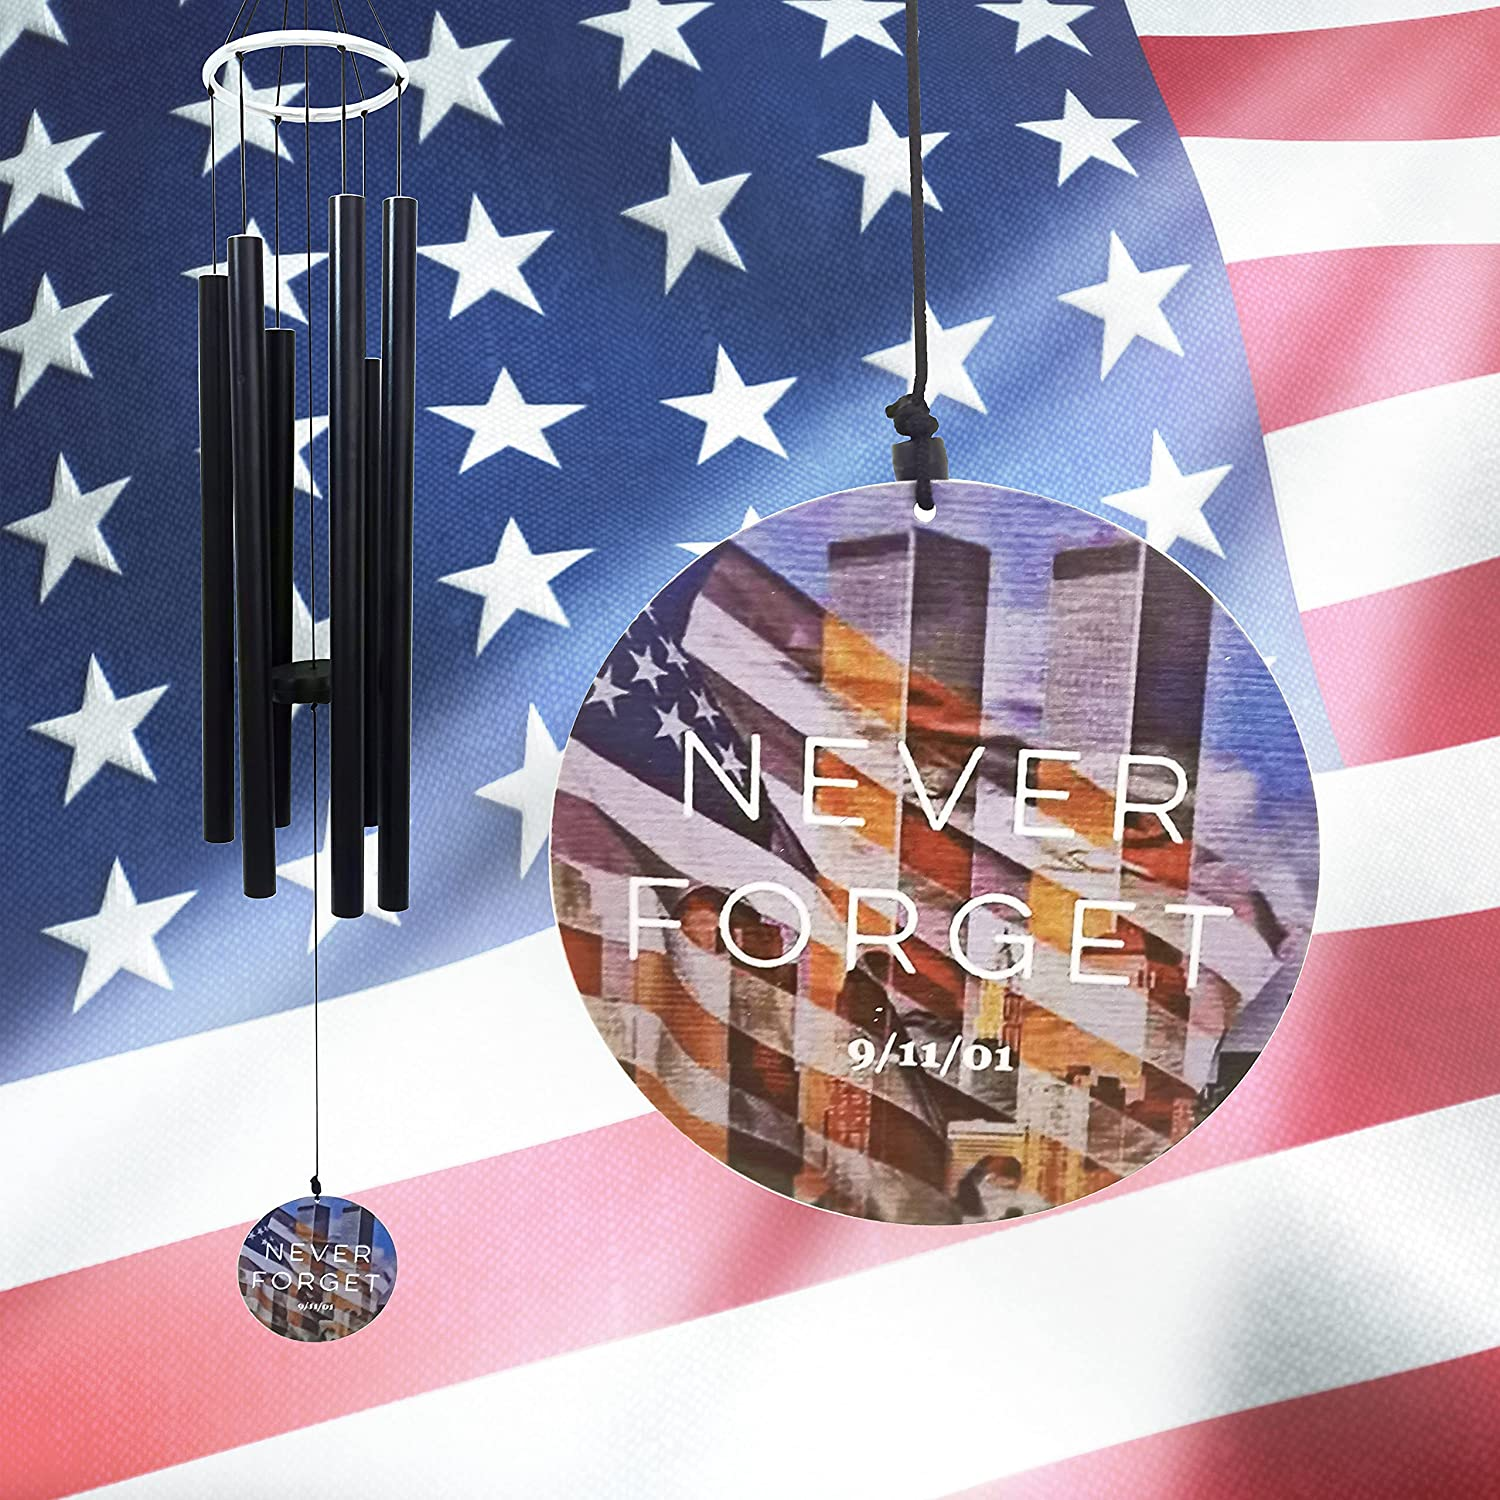 """Reservation """"Never Forget 9 11"""" Commemorative Anniversary Super sale period limited Mem 20th"""